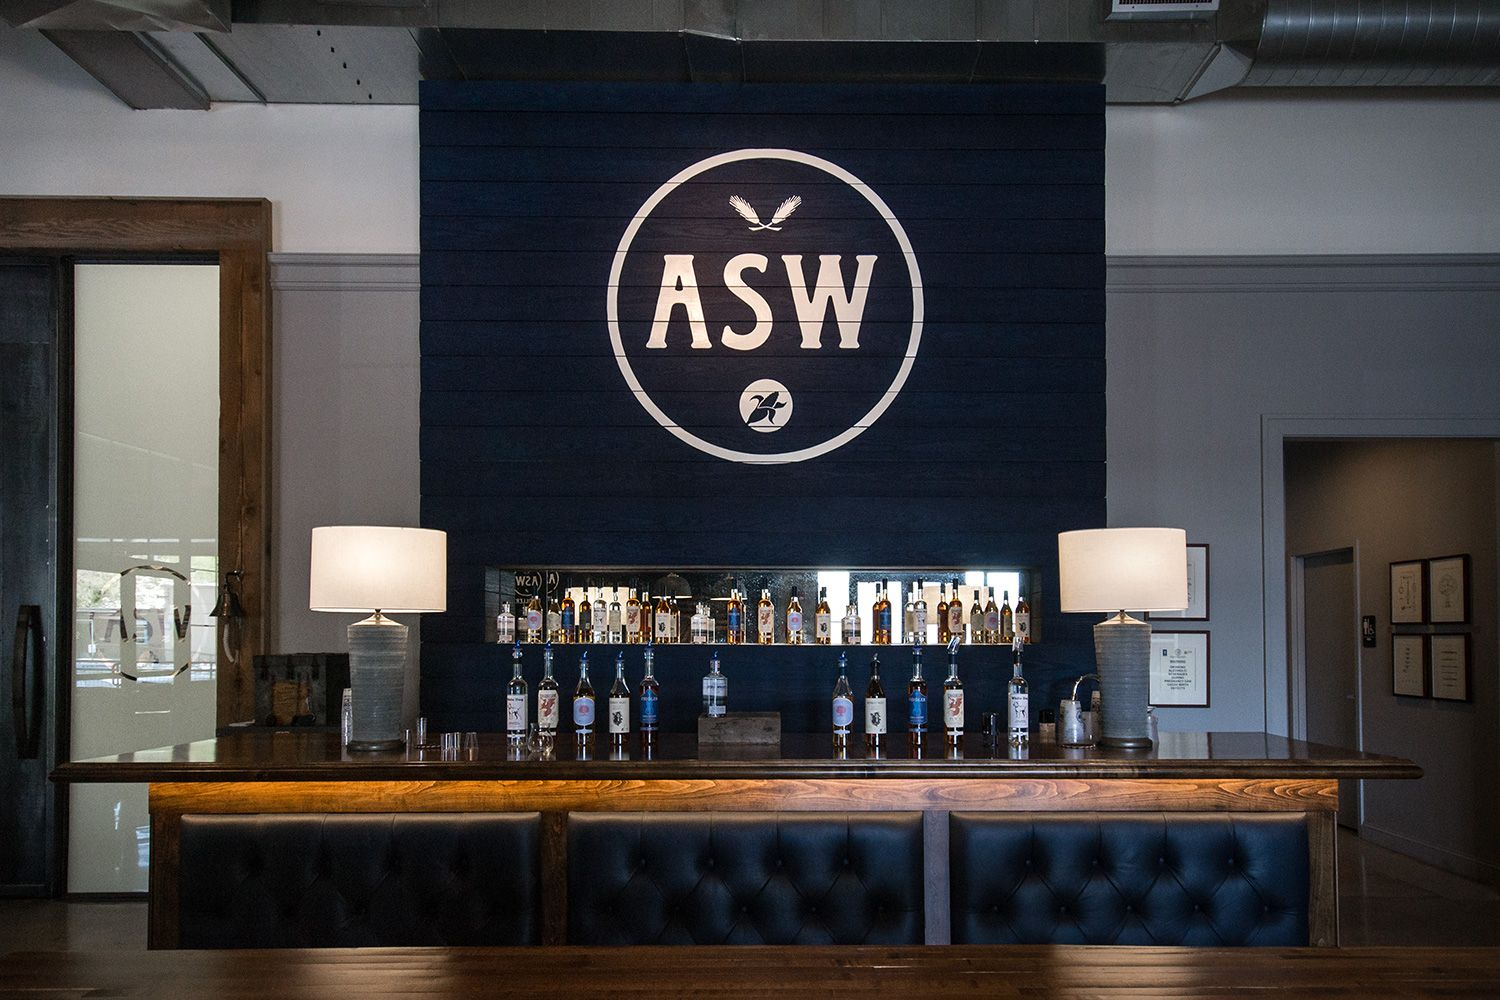 The tasting bar inside the ASW distillery.